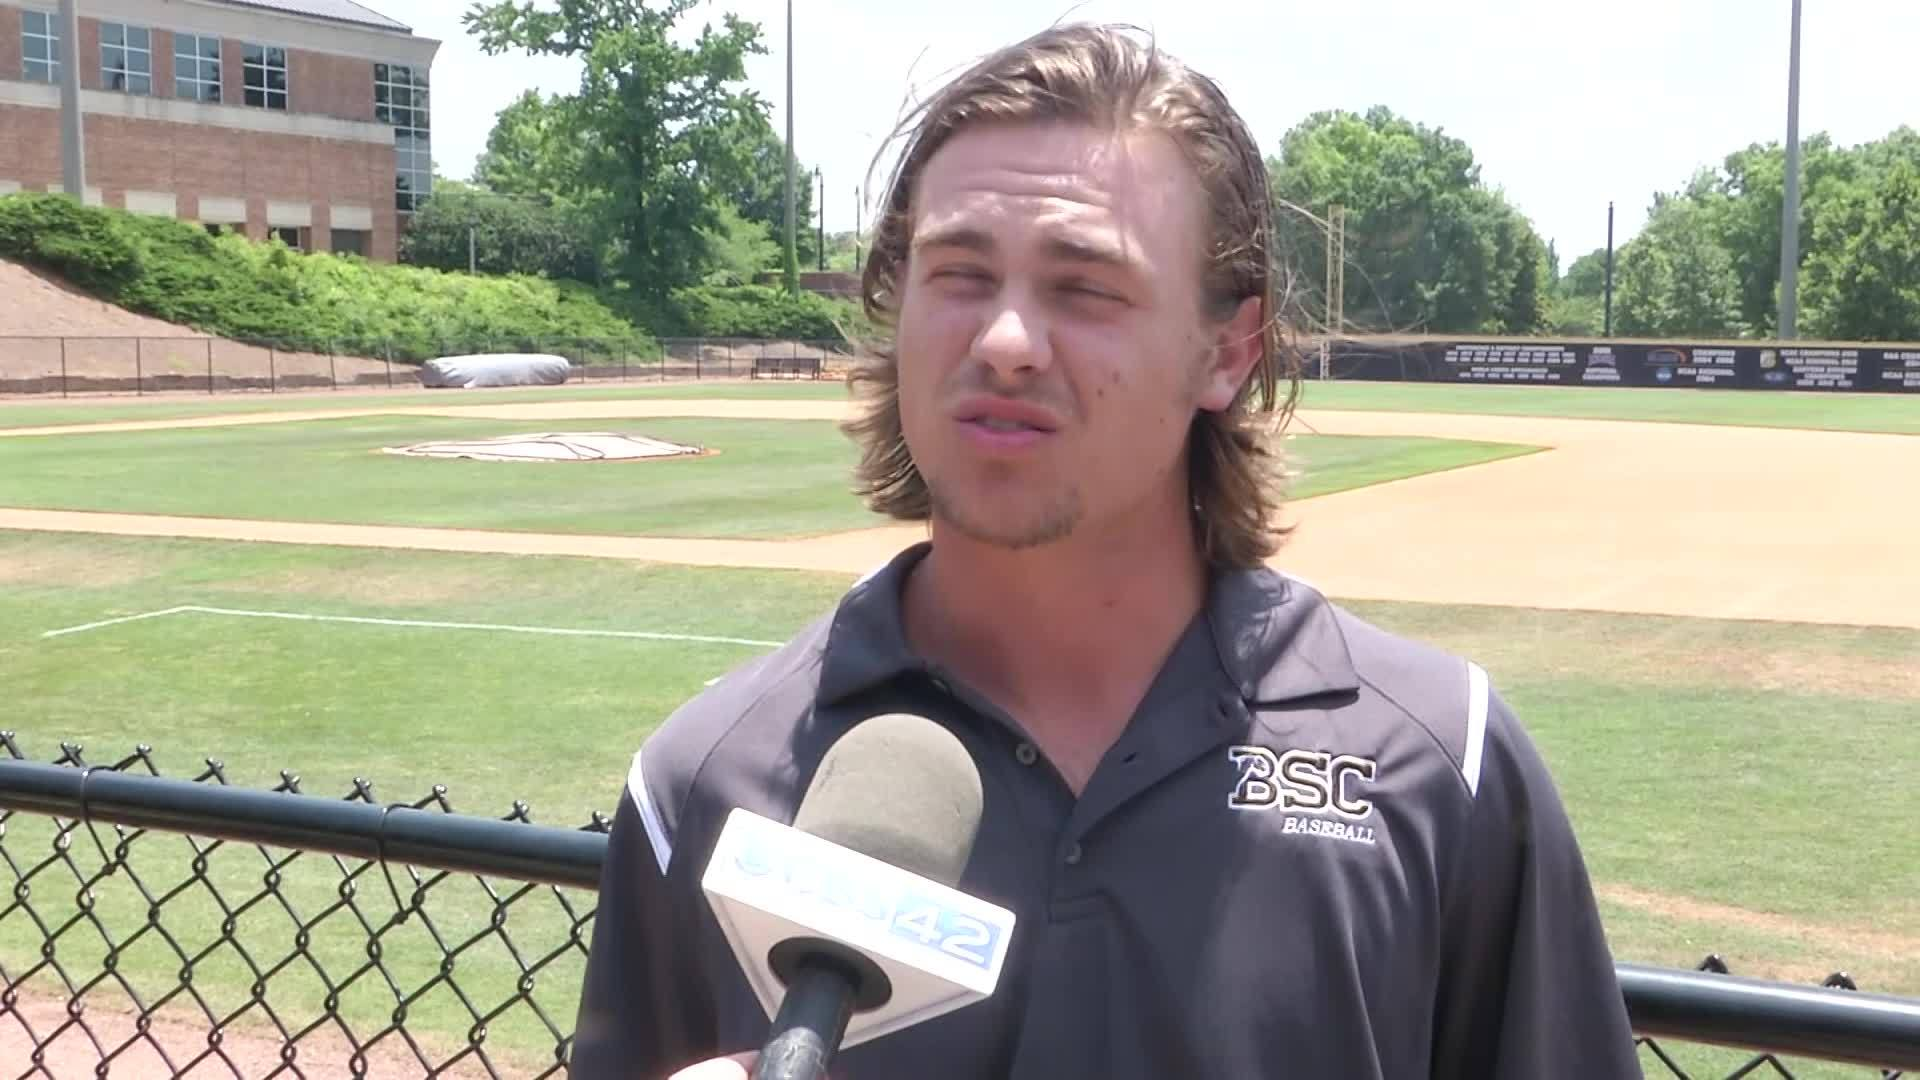 Birmingham-Southern Baseball leaves for D3 college world series